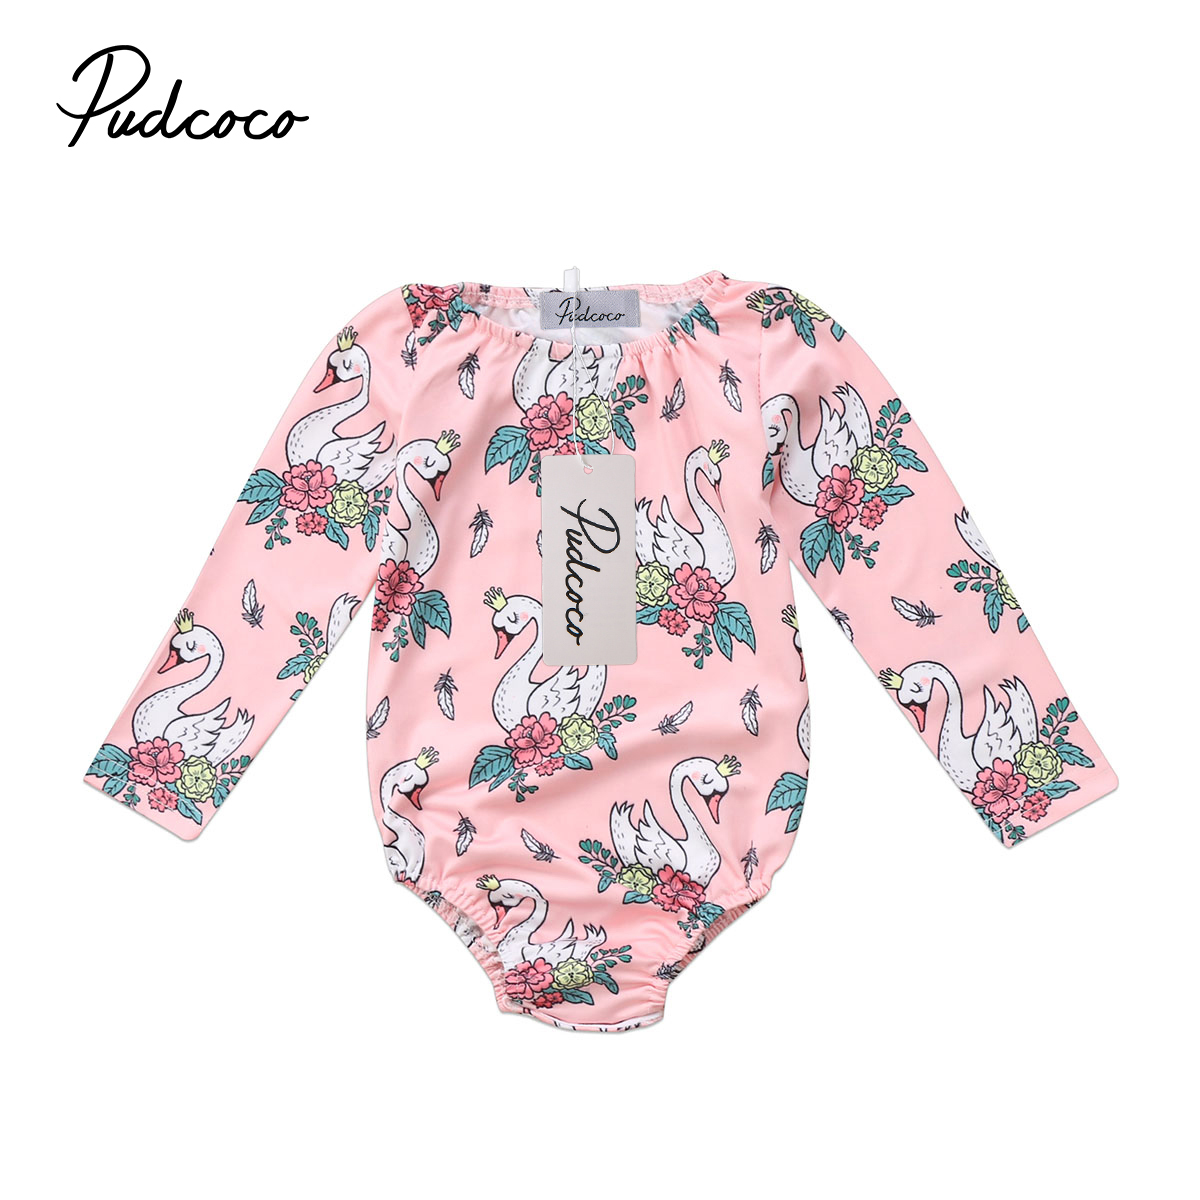 Pudcoco Newborn Baby Girls Swan Flower Long Sleeve Romper Cotton Jumpsuit Winter Toddler Girl Clothes iyeal newest 2018 princess newborn baby girl romper lace cotton long sleeve infant jumpsuit headband toddler outfits for 0 12m